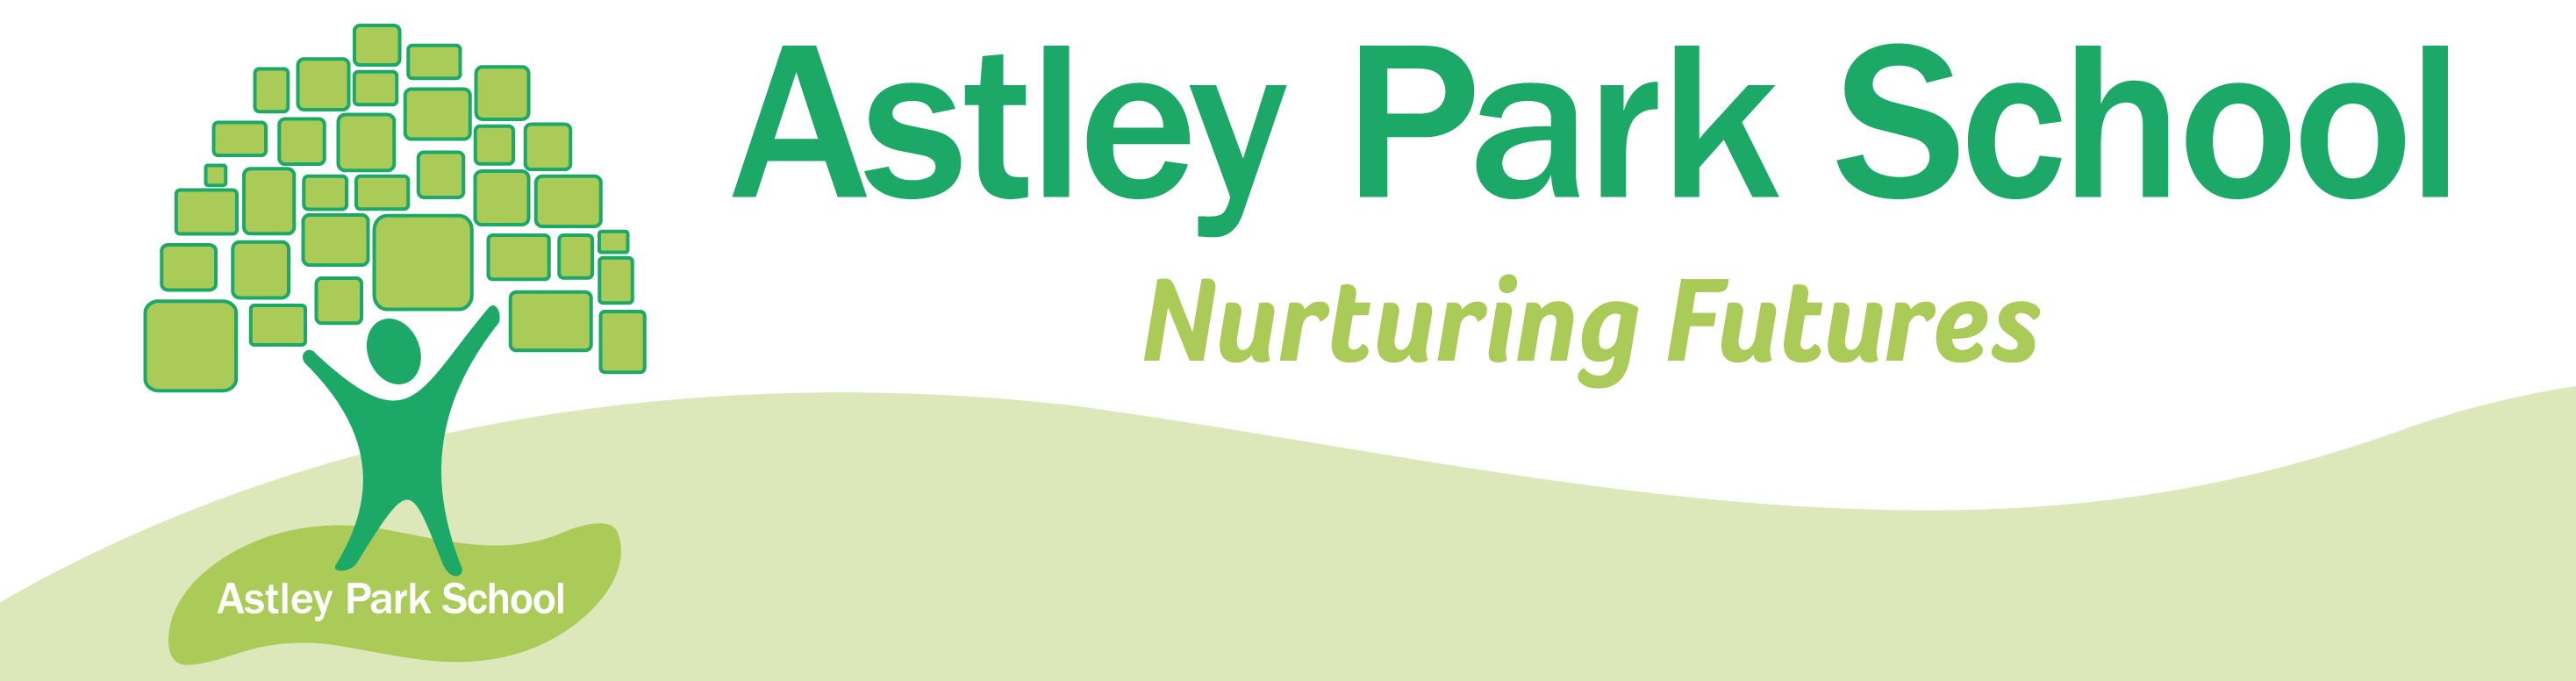 Policies | Astley Park School